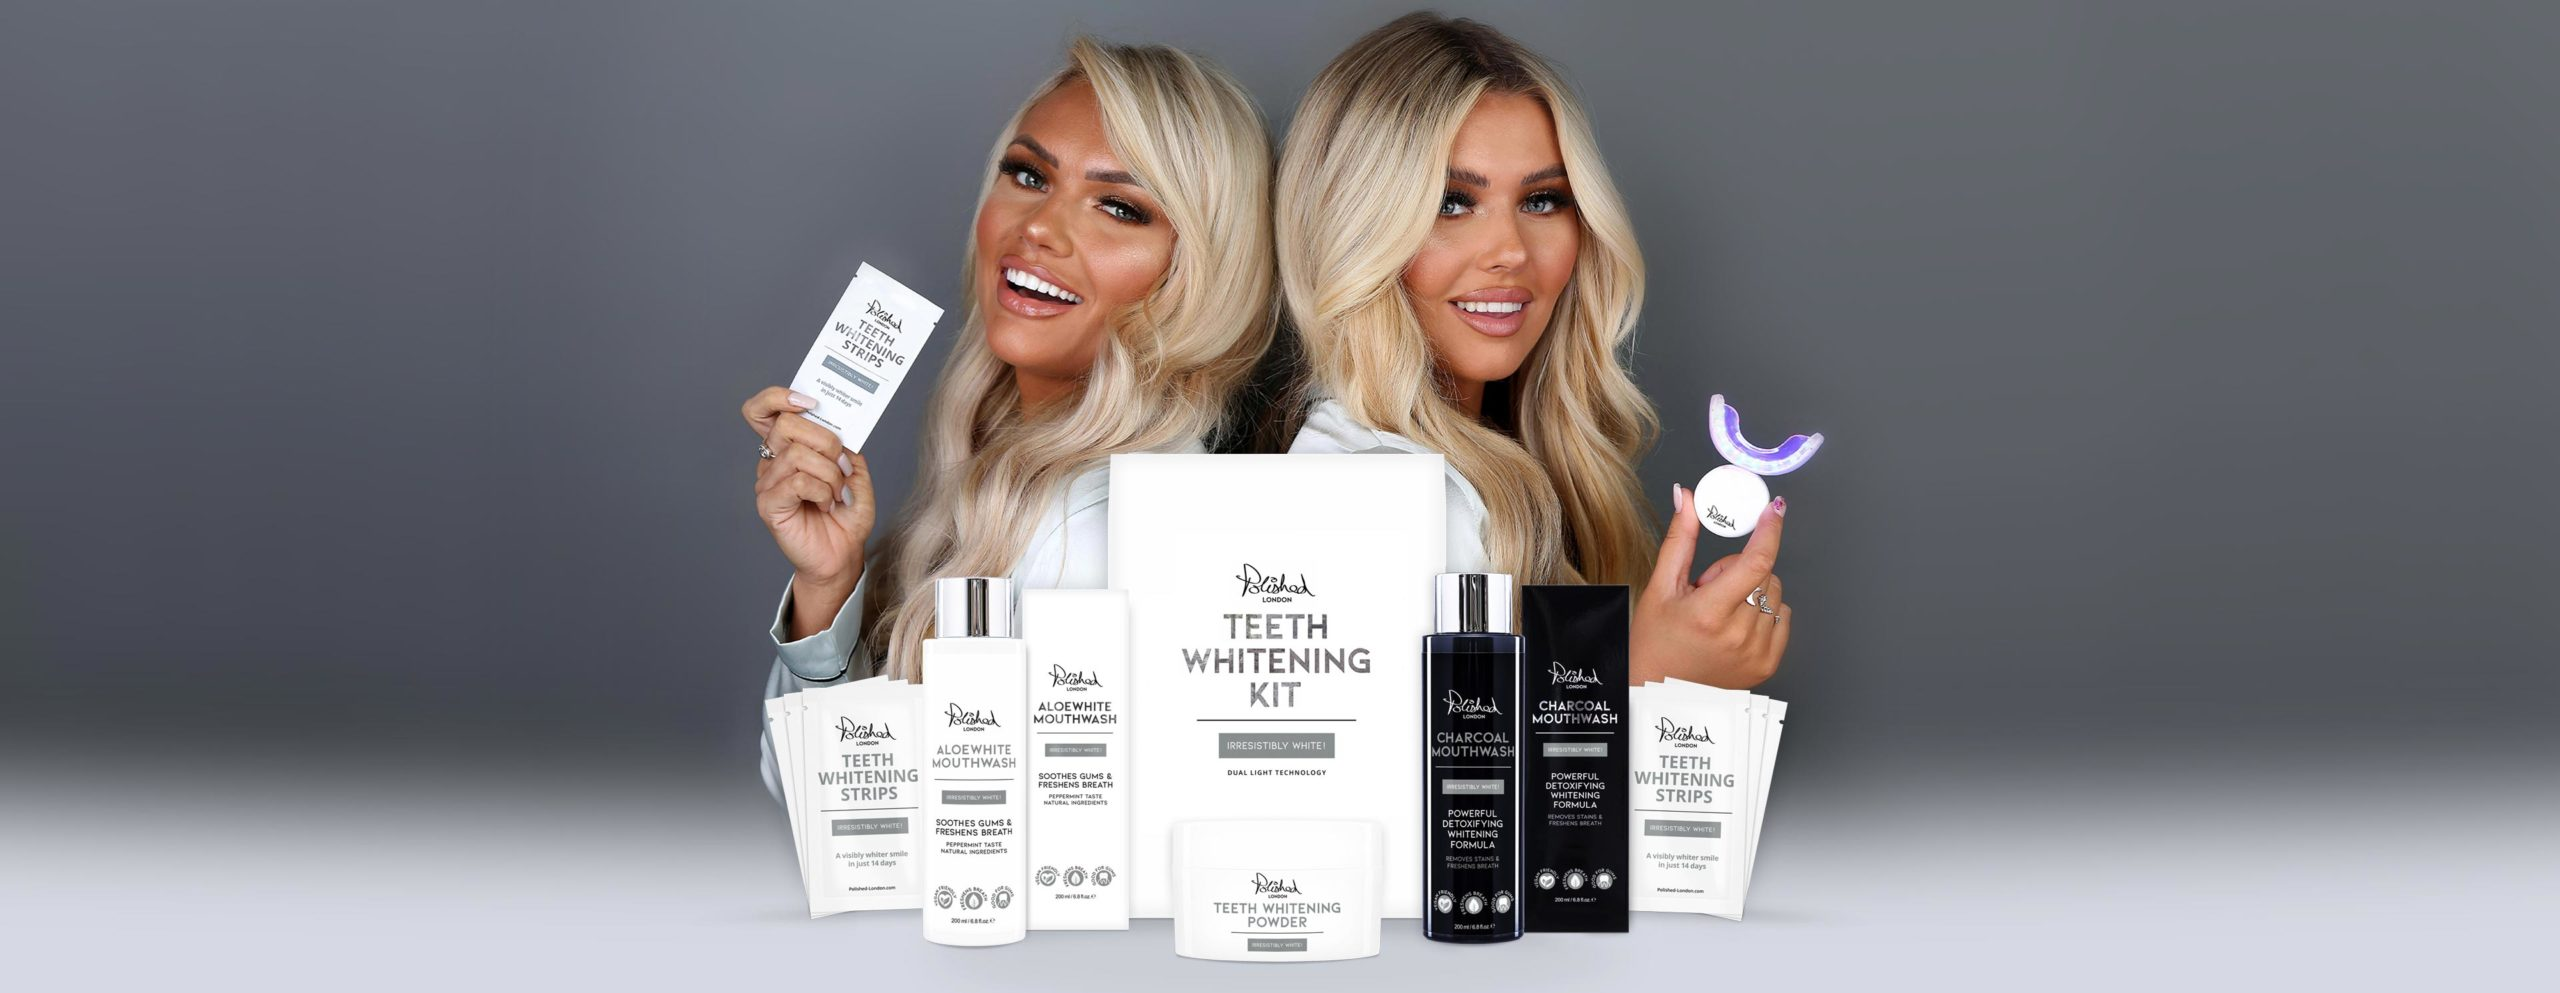 https://thebeautystudio.ie/wp-content/uploads/2020/05/teeth-whitening-scaled.jpg